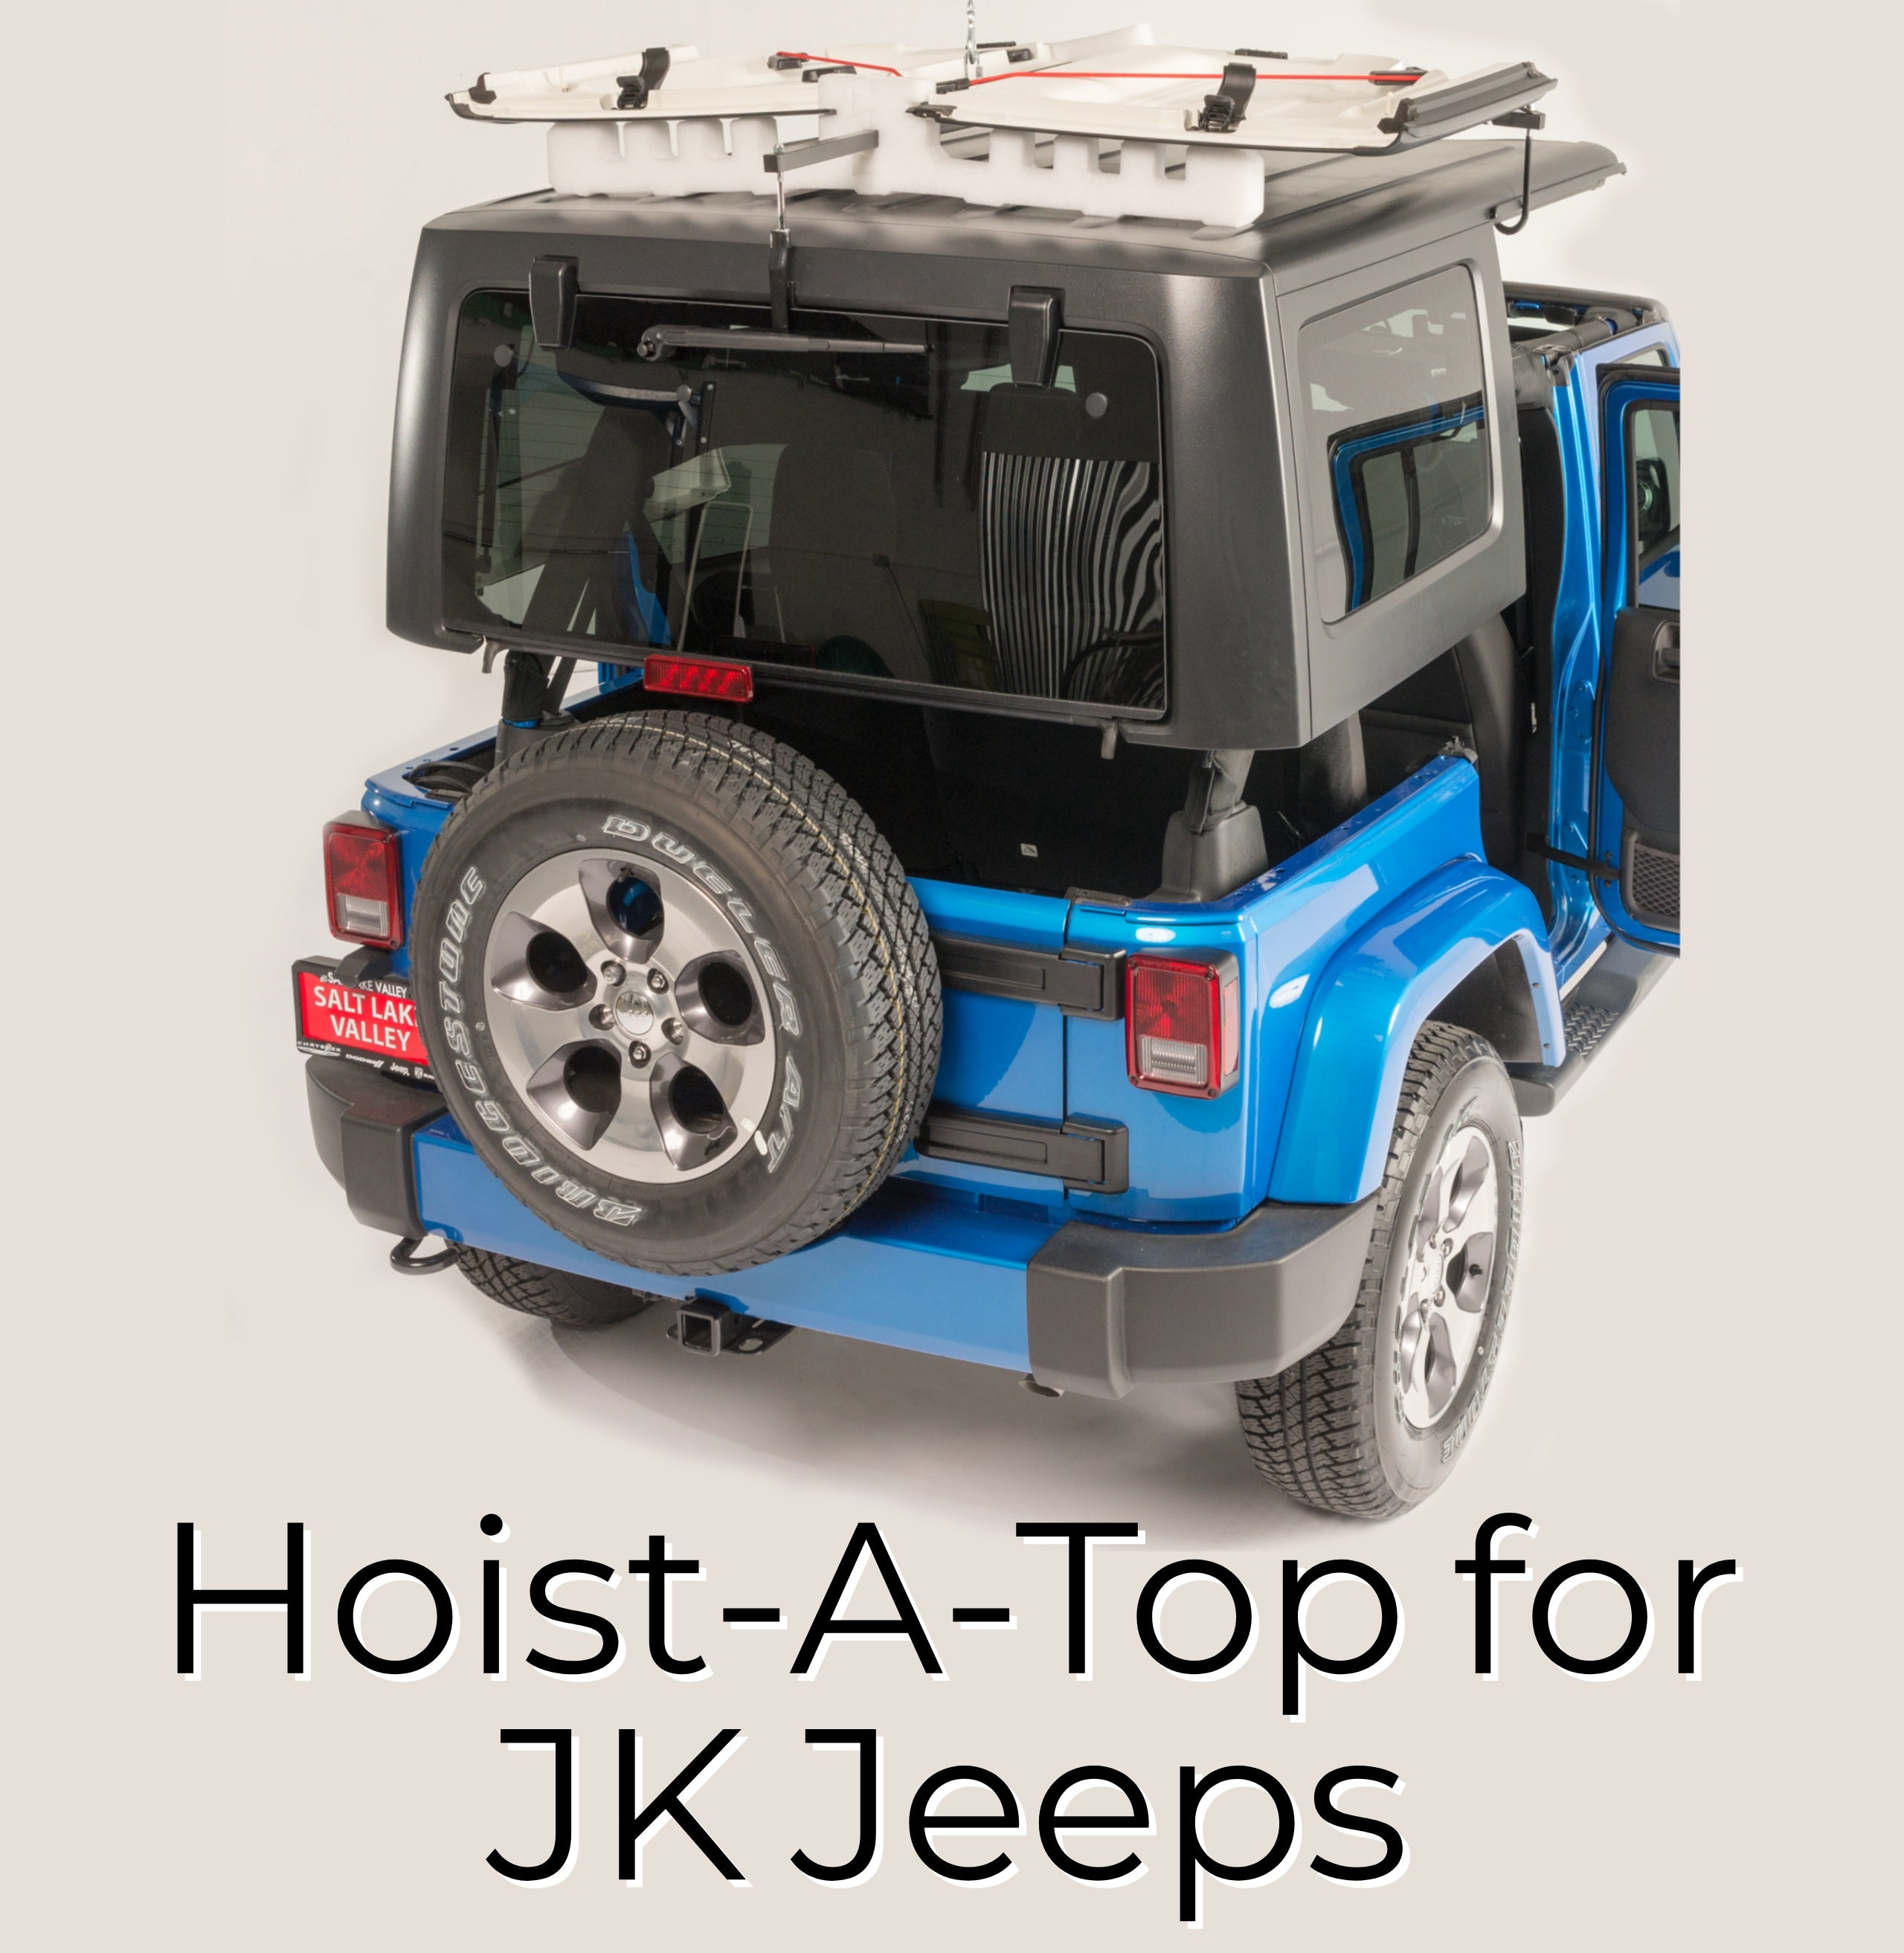 Jeep Roof Hoist: Jeep Roof Lifter & For Several Reasons Not The Least Of